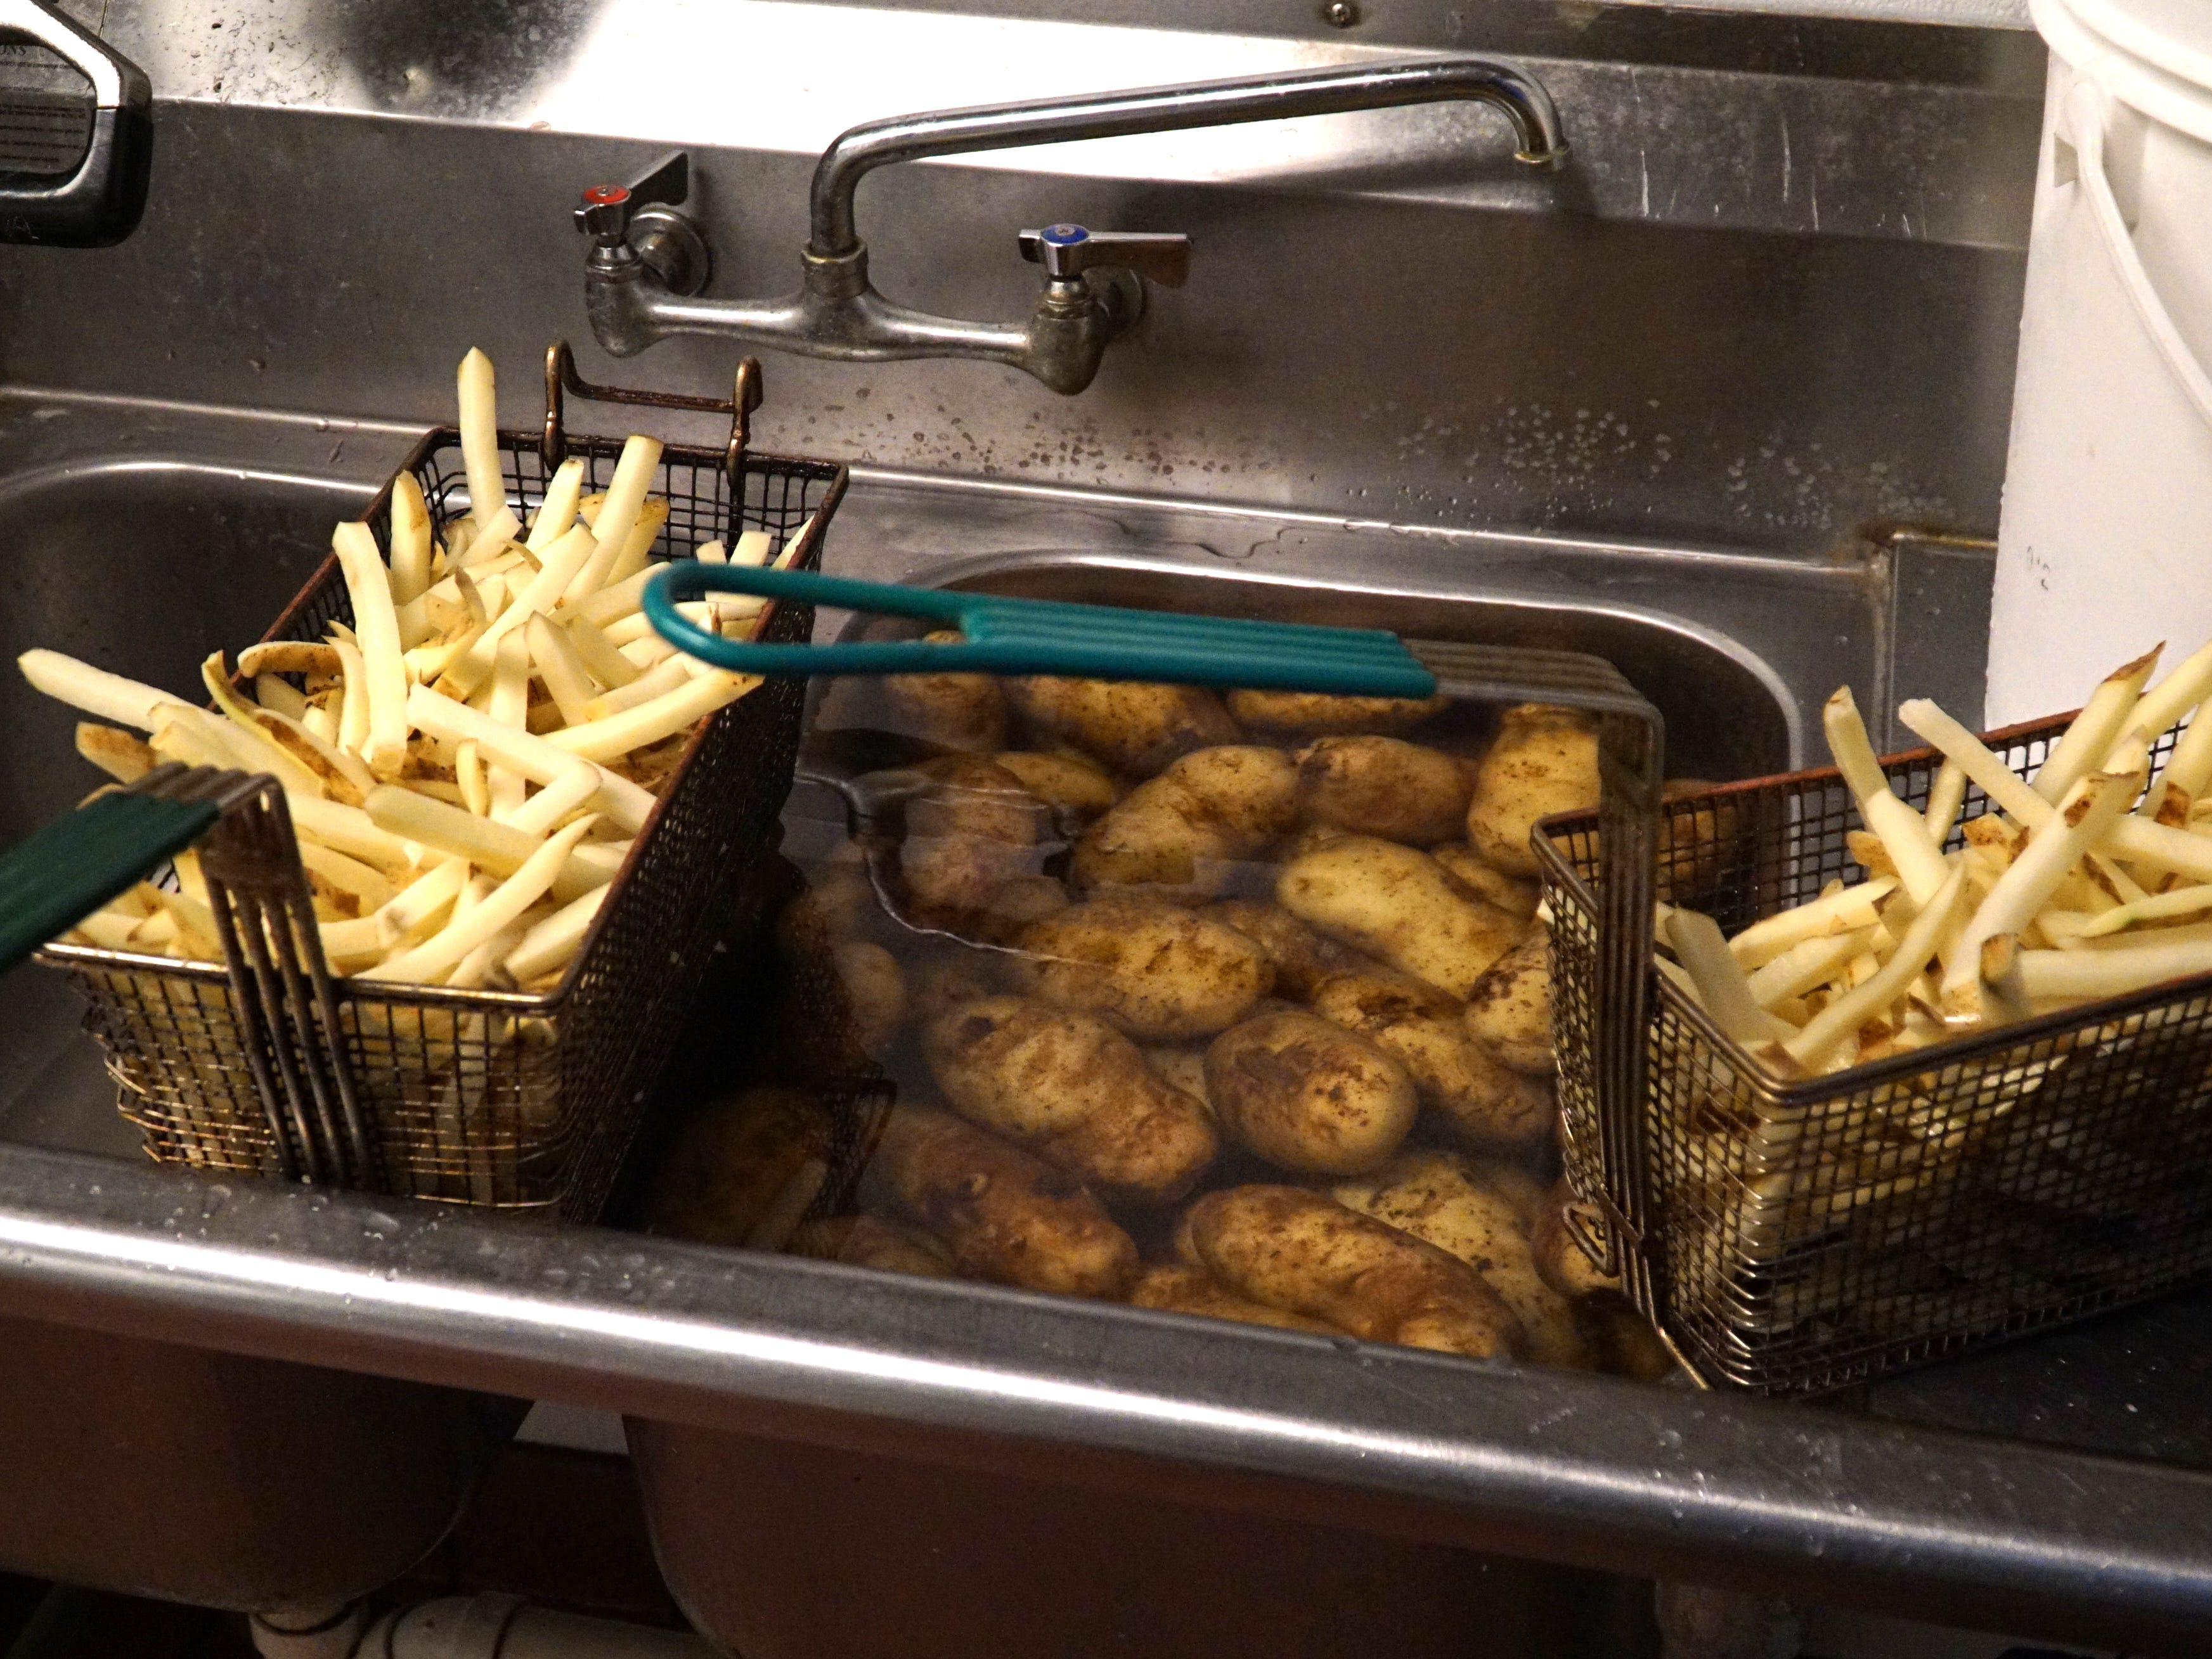 The Burger Joint makes it known that it hand-cuts all of its own fries.